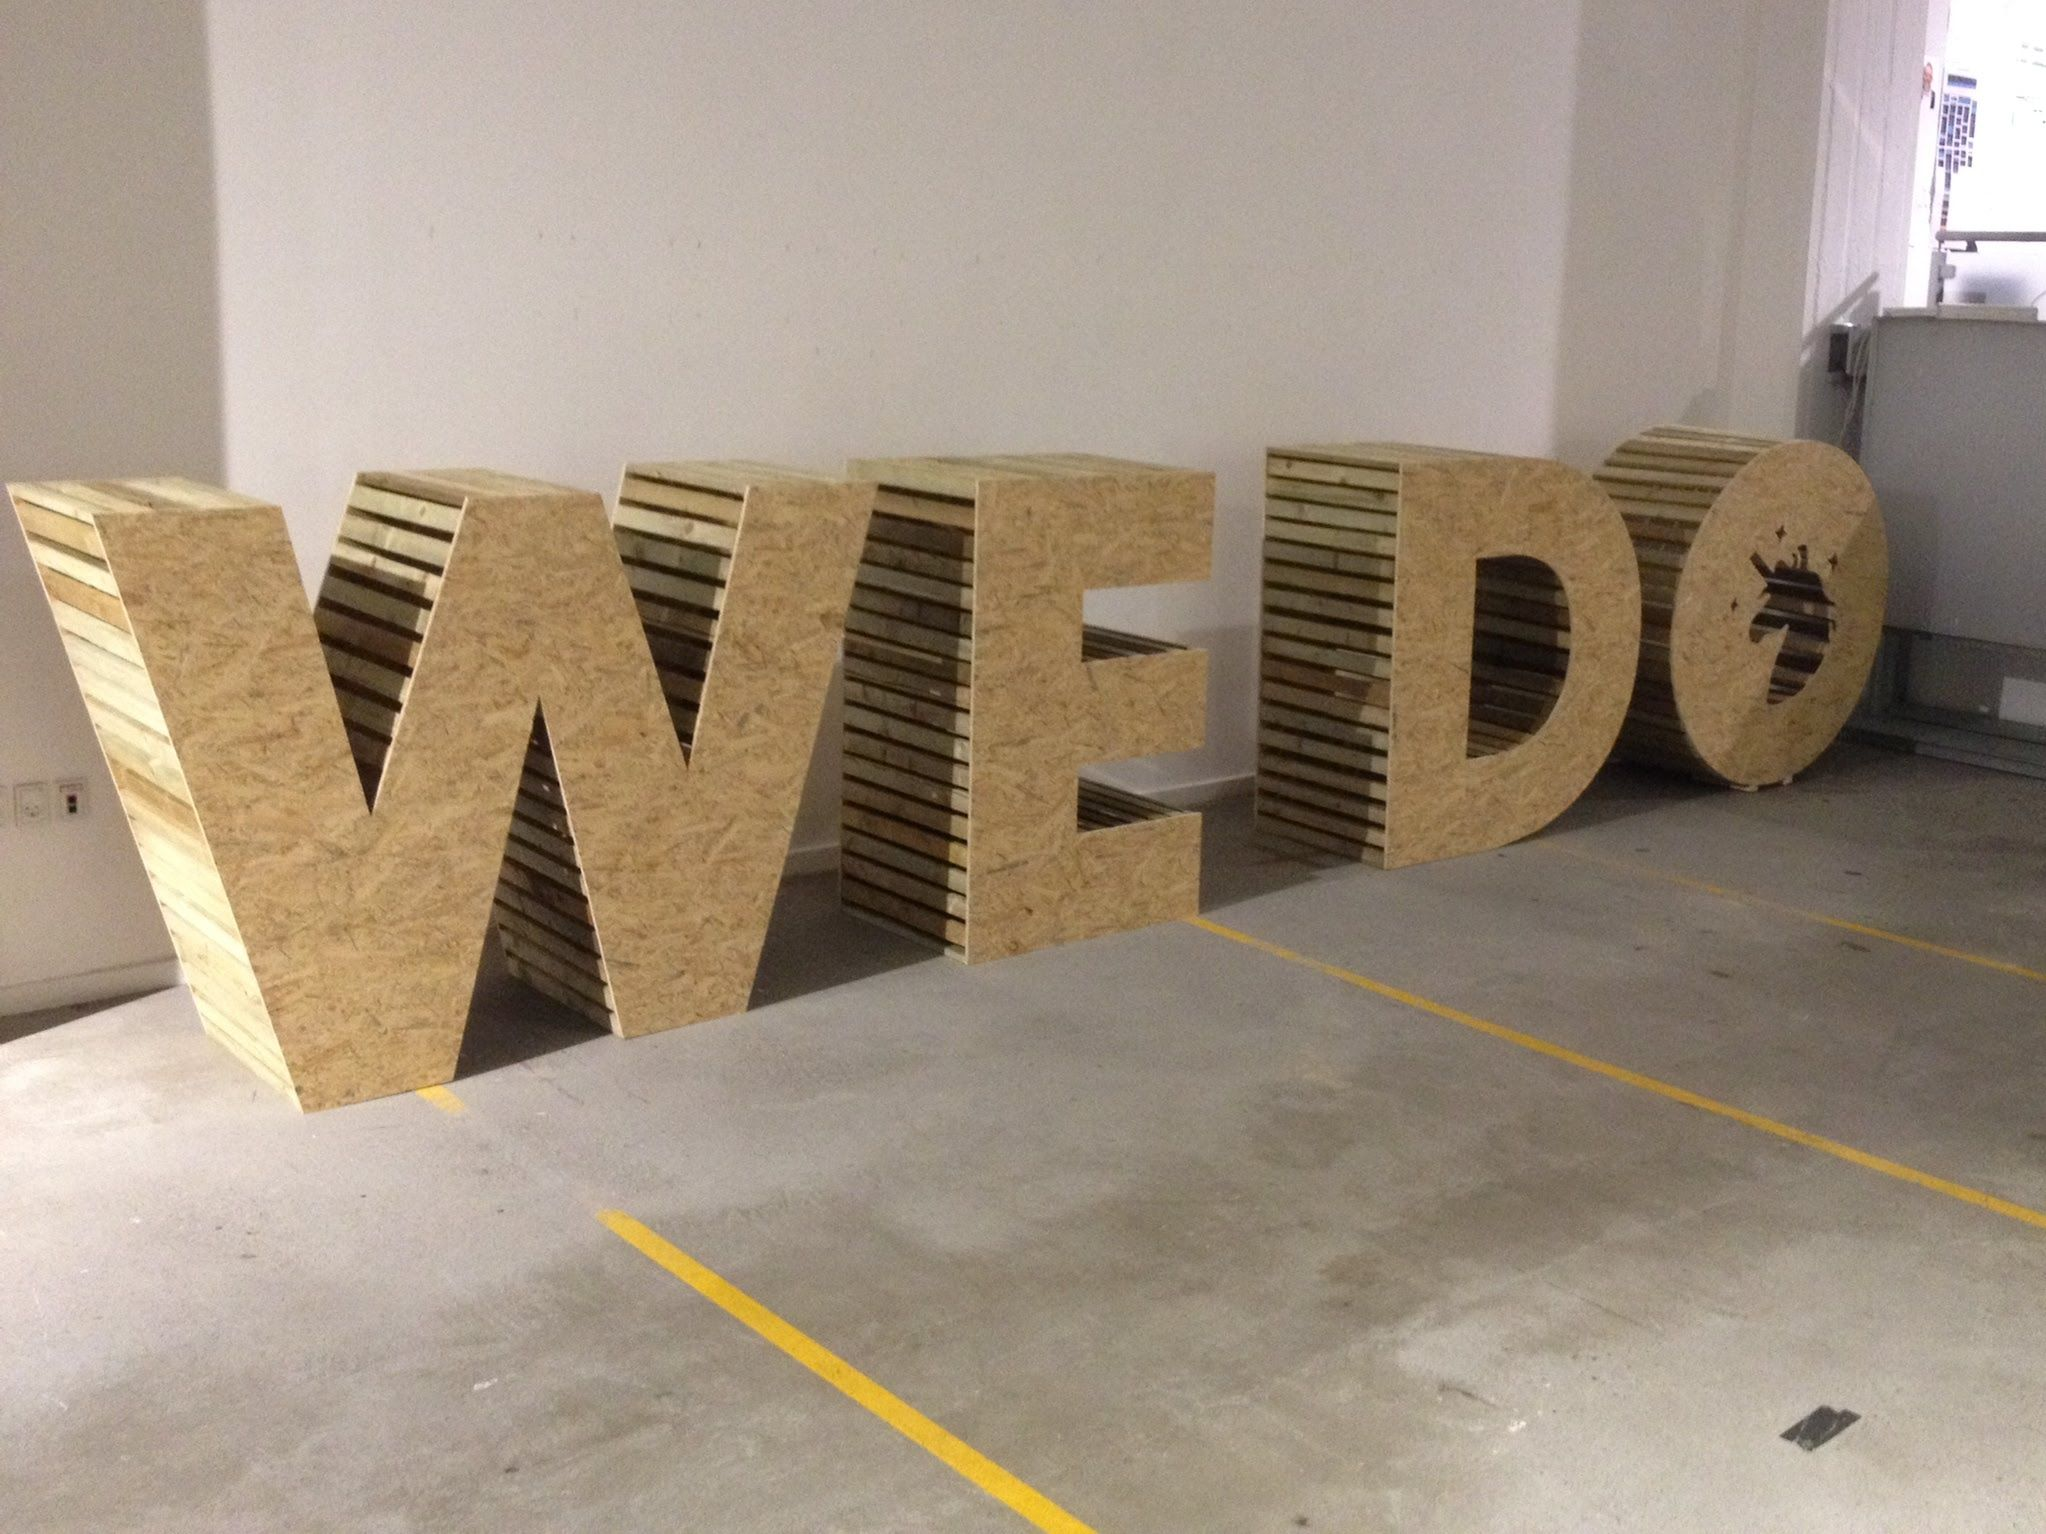 A Timelapse Of Building 4 Big Wooden Letters 120 Cm Tall For The Open Agency Event 2014 At Digitaslbi Large Wooden Letters Big Wooden Letters Wooden Letters